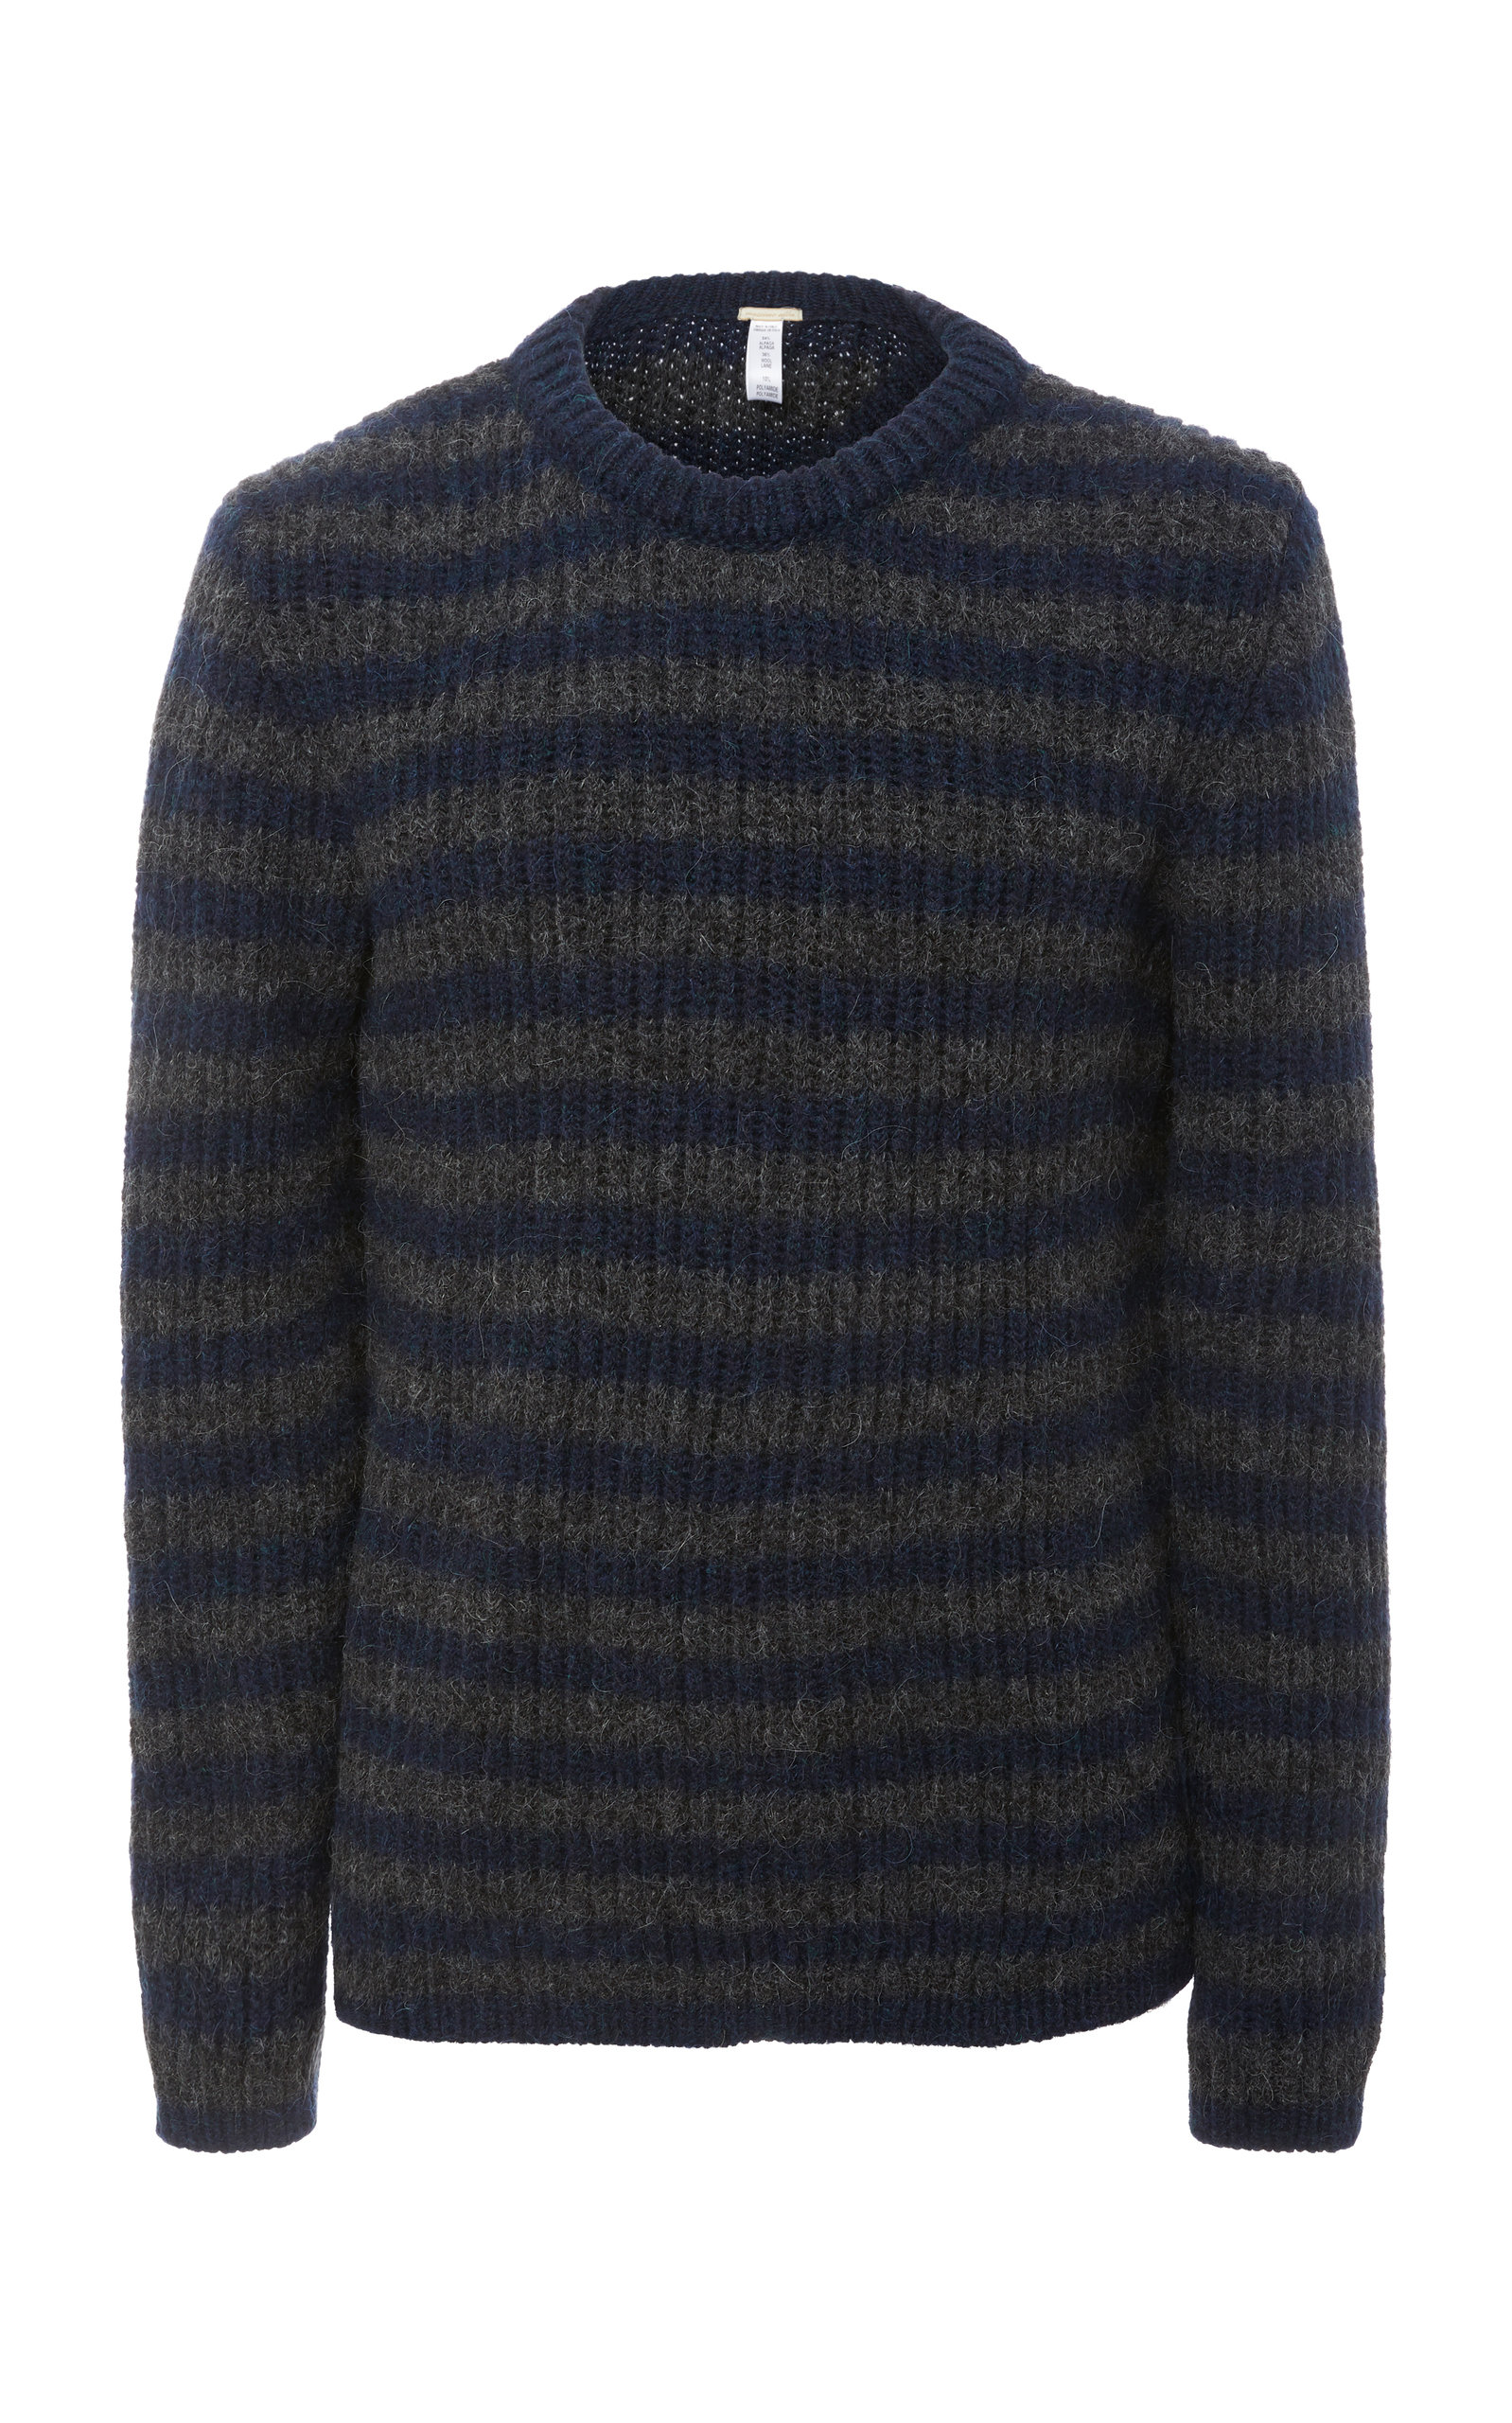 MASSIMO ALBA STRIPED WOOL CREWNECK SWEATER